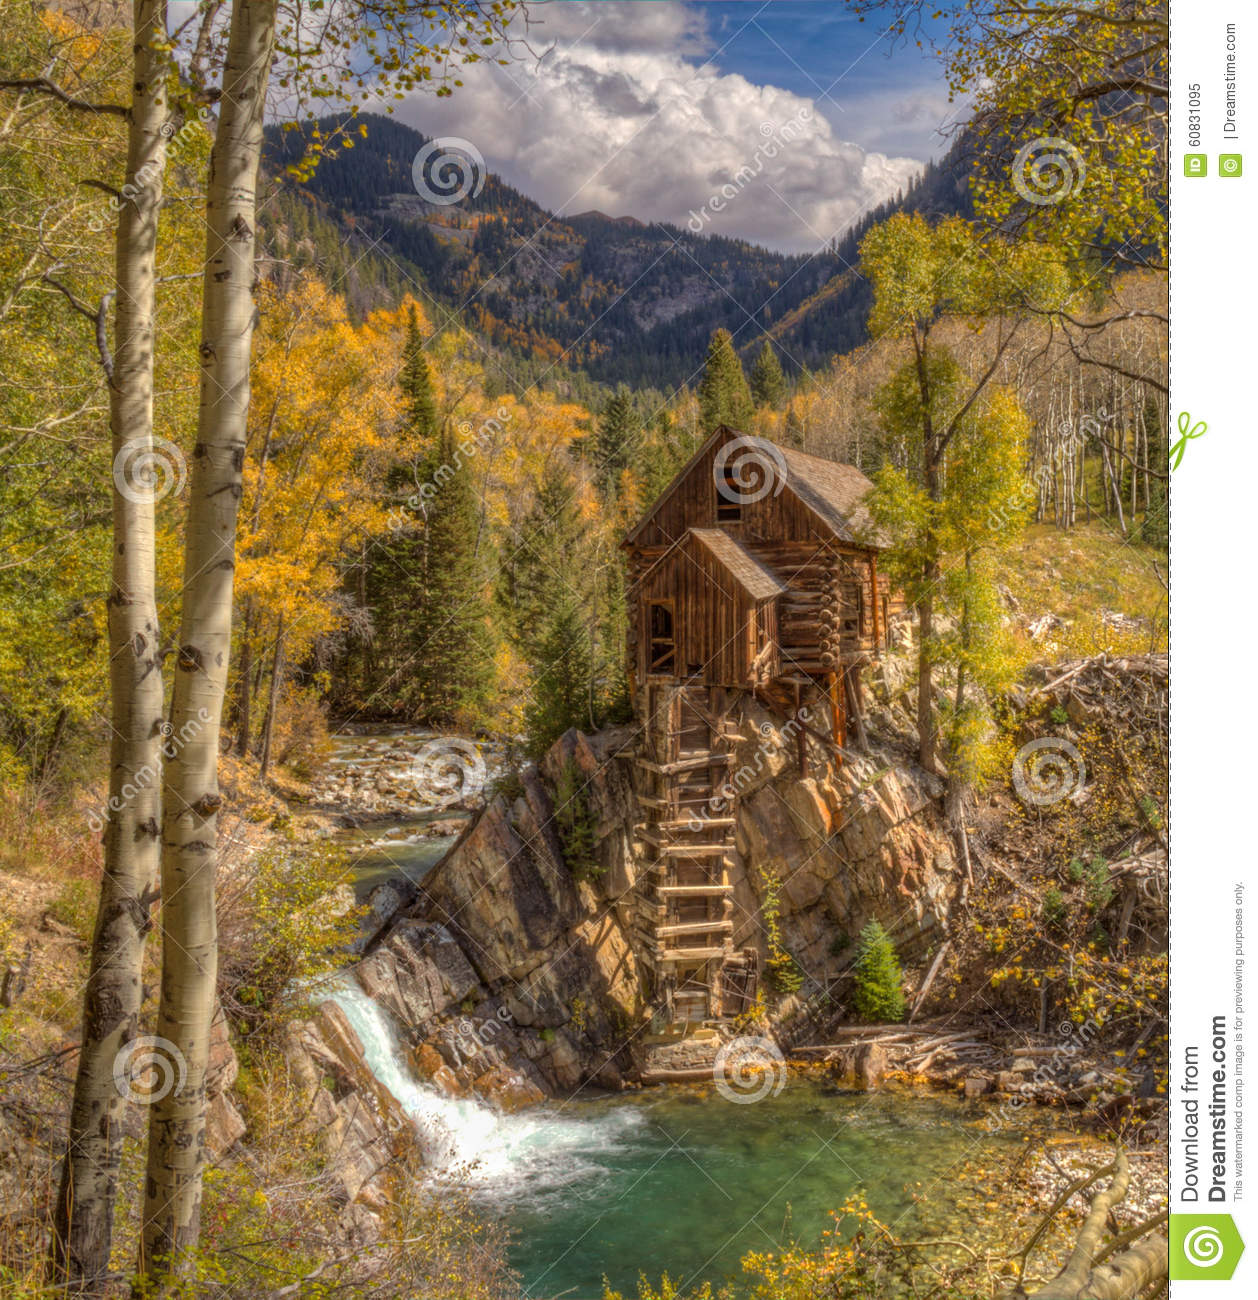 Crystal Mill, or Old Mill is an 1892 wooden powerhouse located on an ...